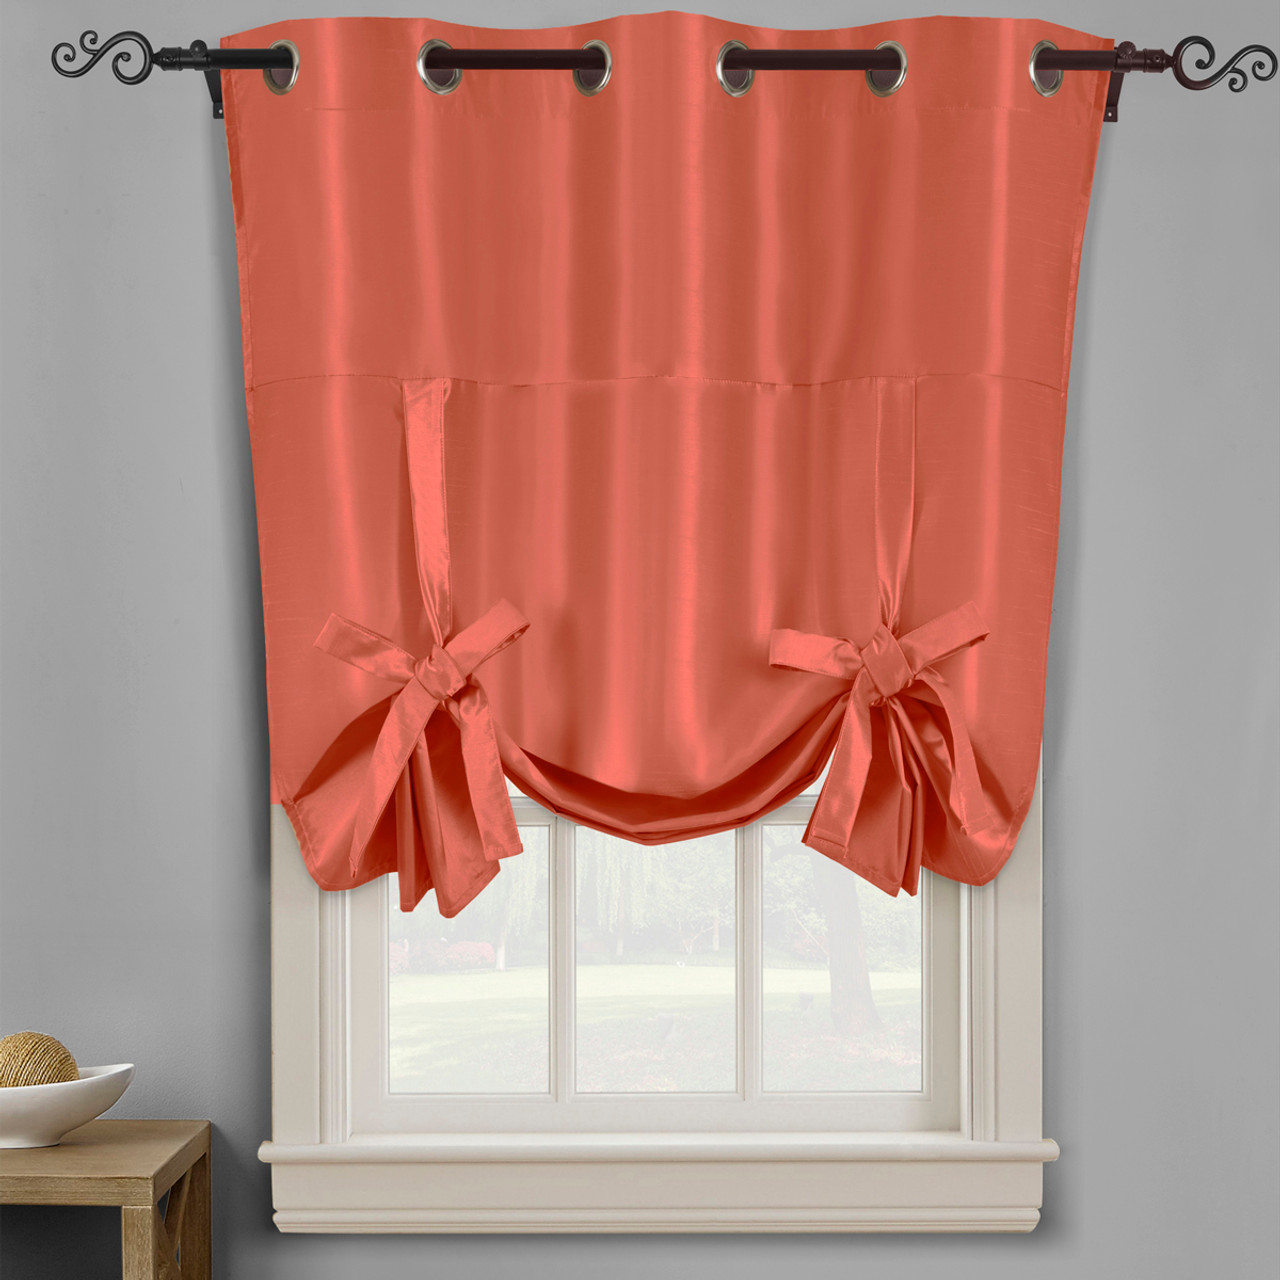 panel curtain curtains blackout insulated top grommet home pin aurora thermal pair